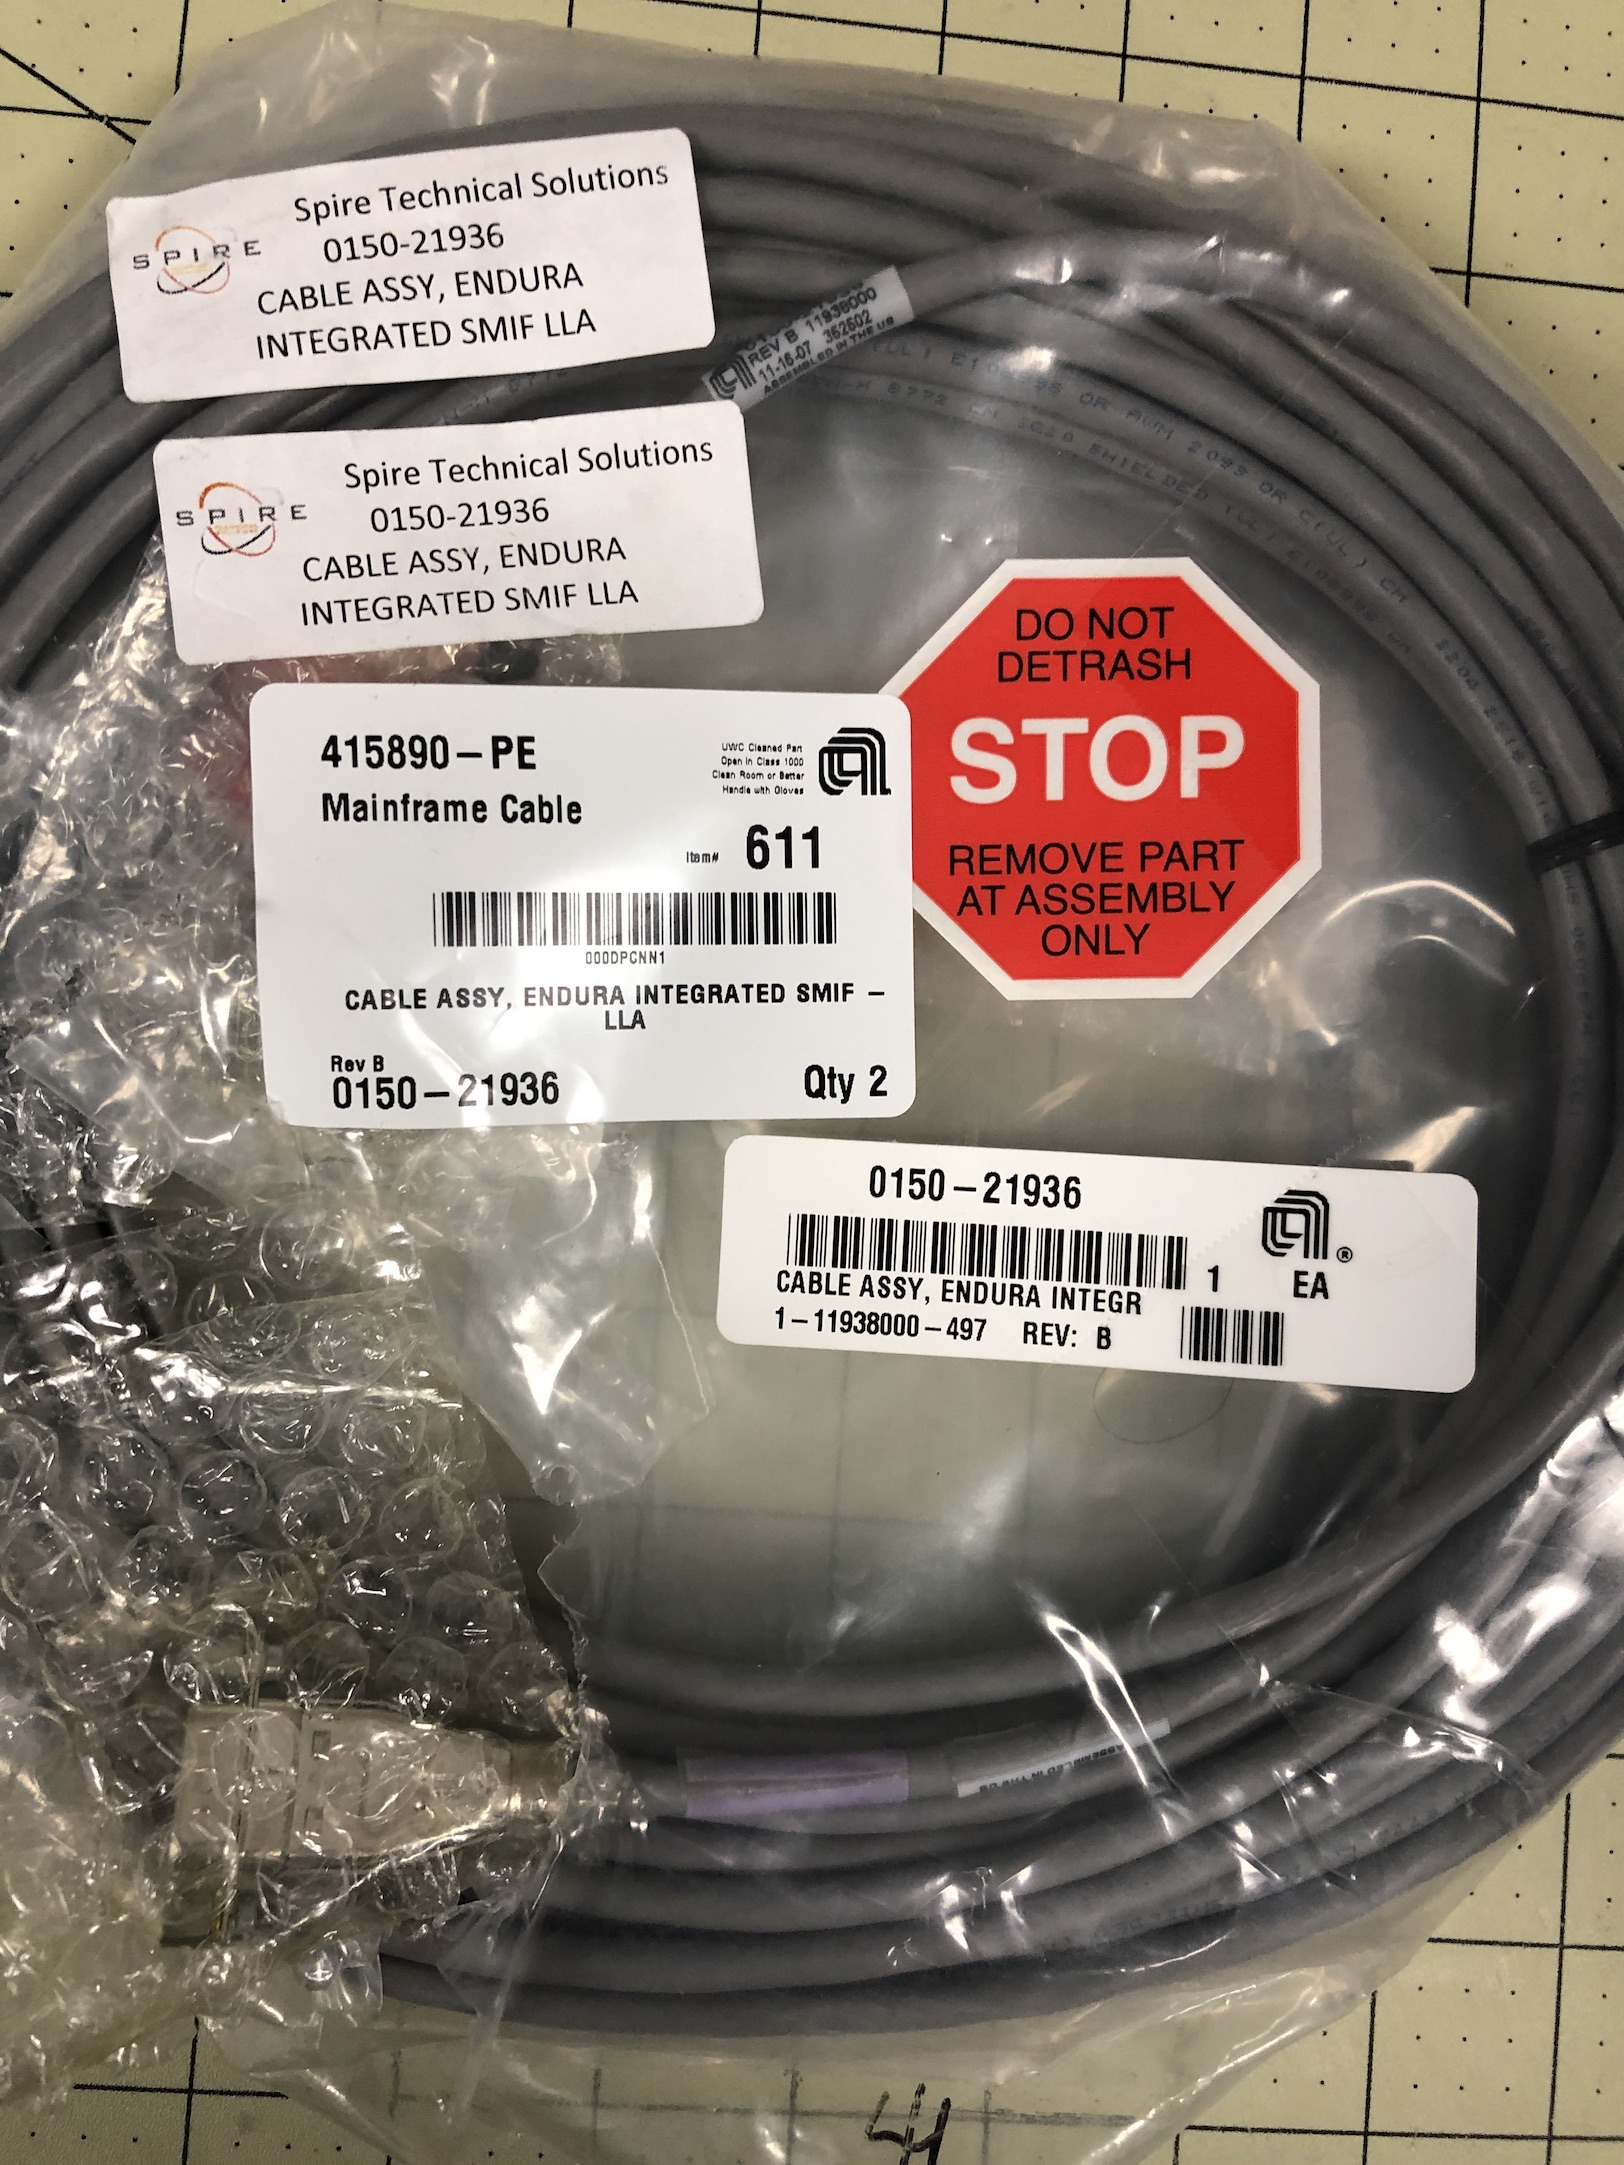 Cable Assy, Endura Integrated